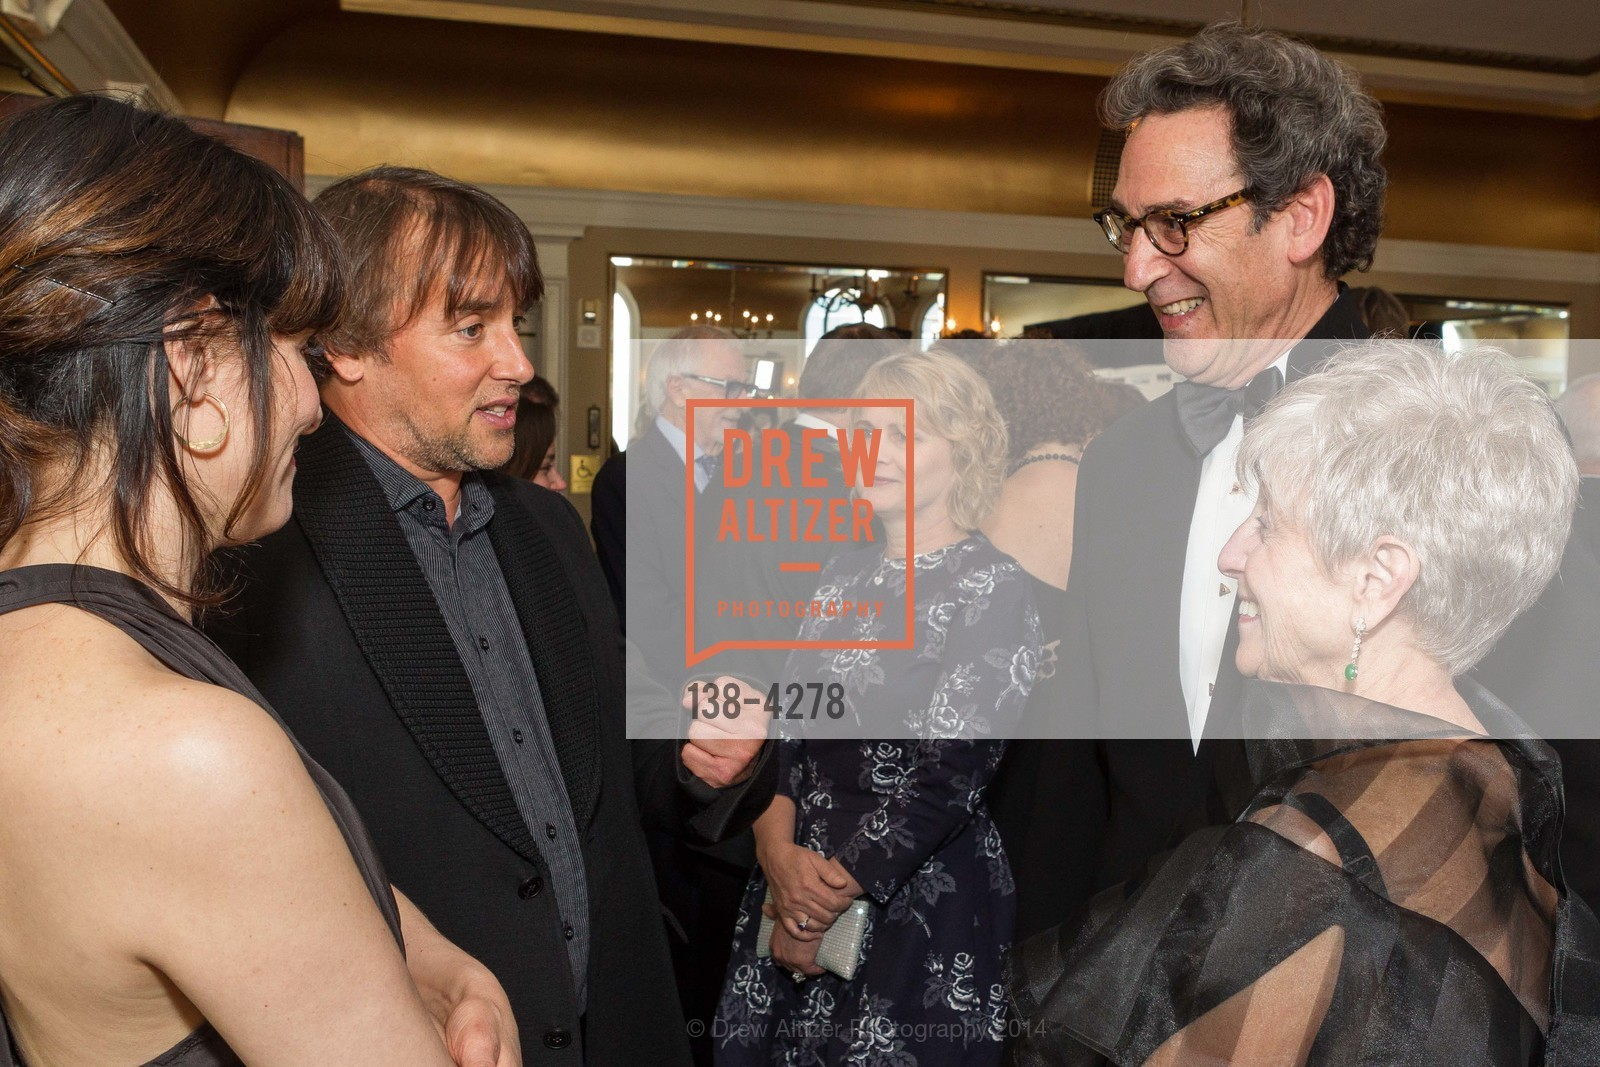 Parker Posey, Richard Linklater, Nancy Livinigston, Fred Levin, Photo #138-4278